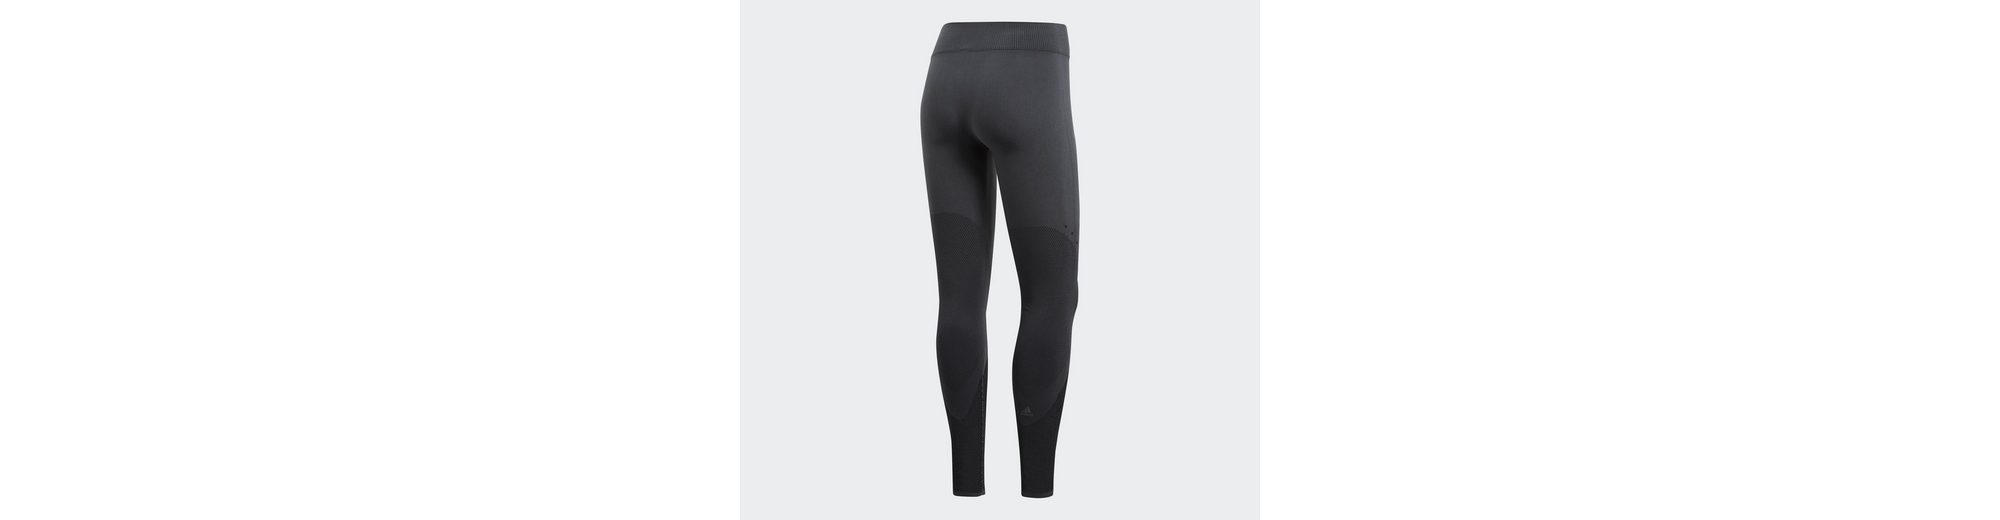 Performance Knit Adidas Leggings Warp Tight dHpwPUpx